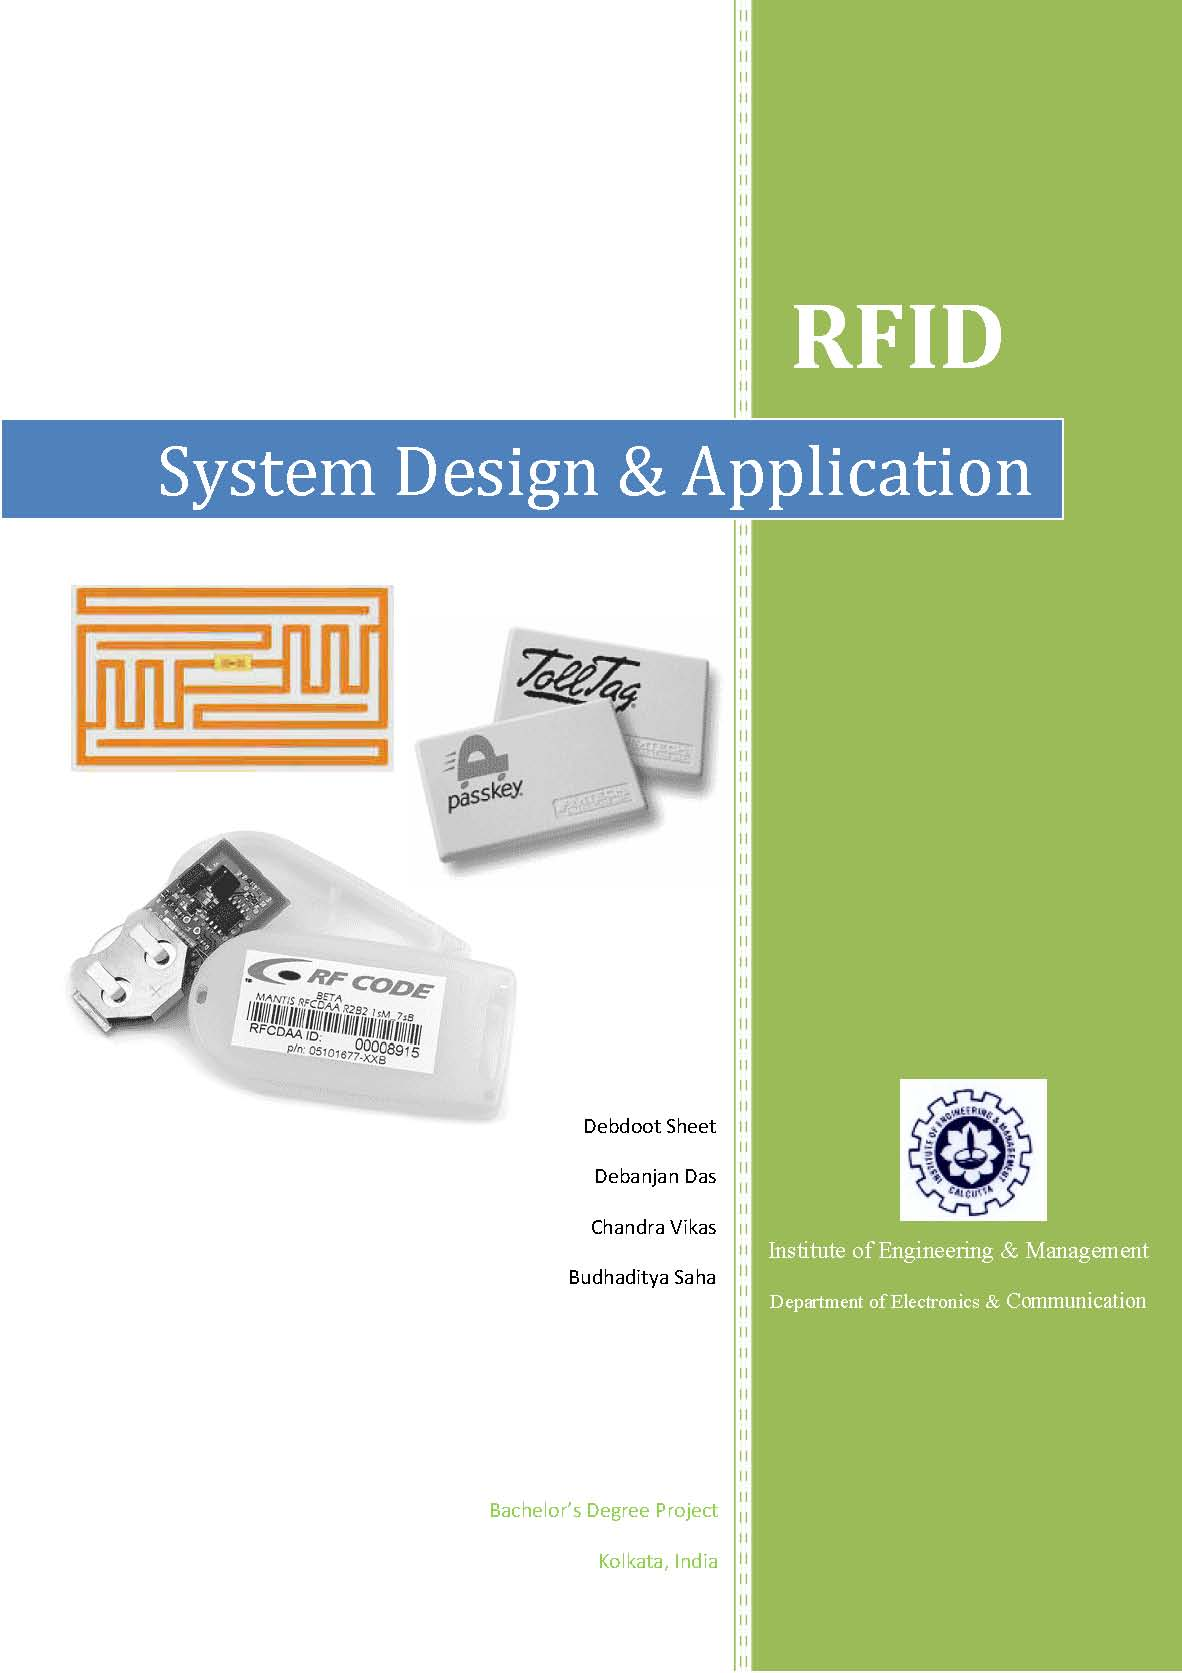 master thesis on rfid This master's thesis is brought to you for free and open access by the   keywords: uhf rfid tags, antenna design, multiple passive rfid.